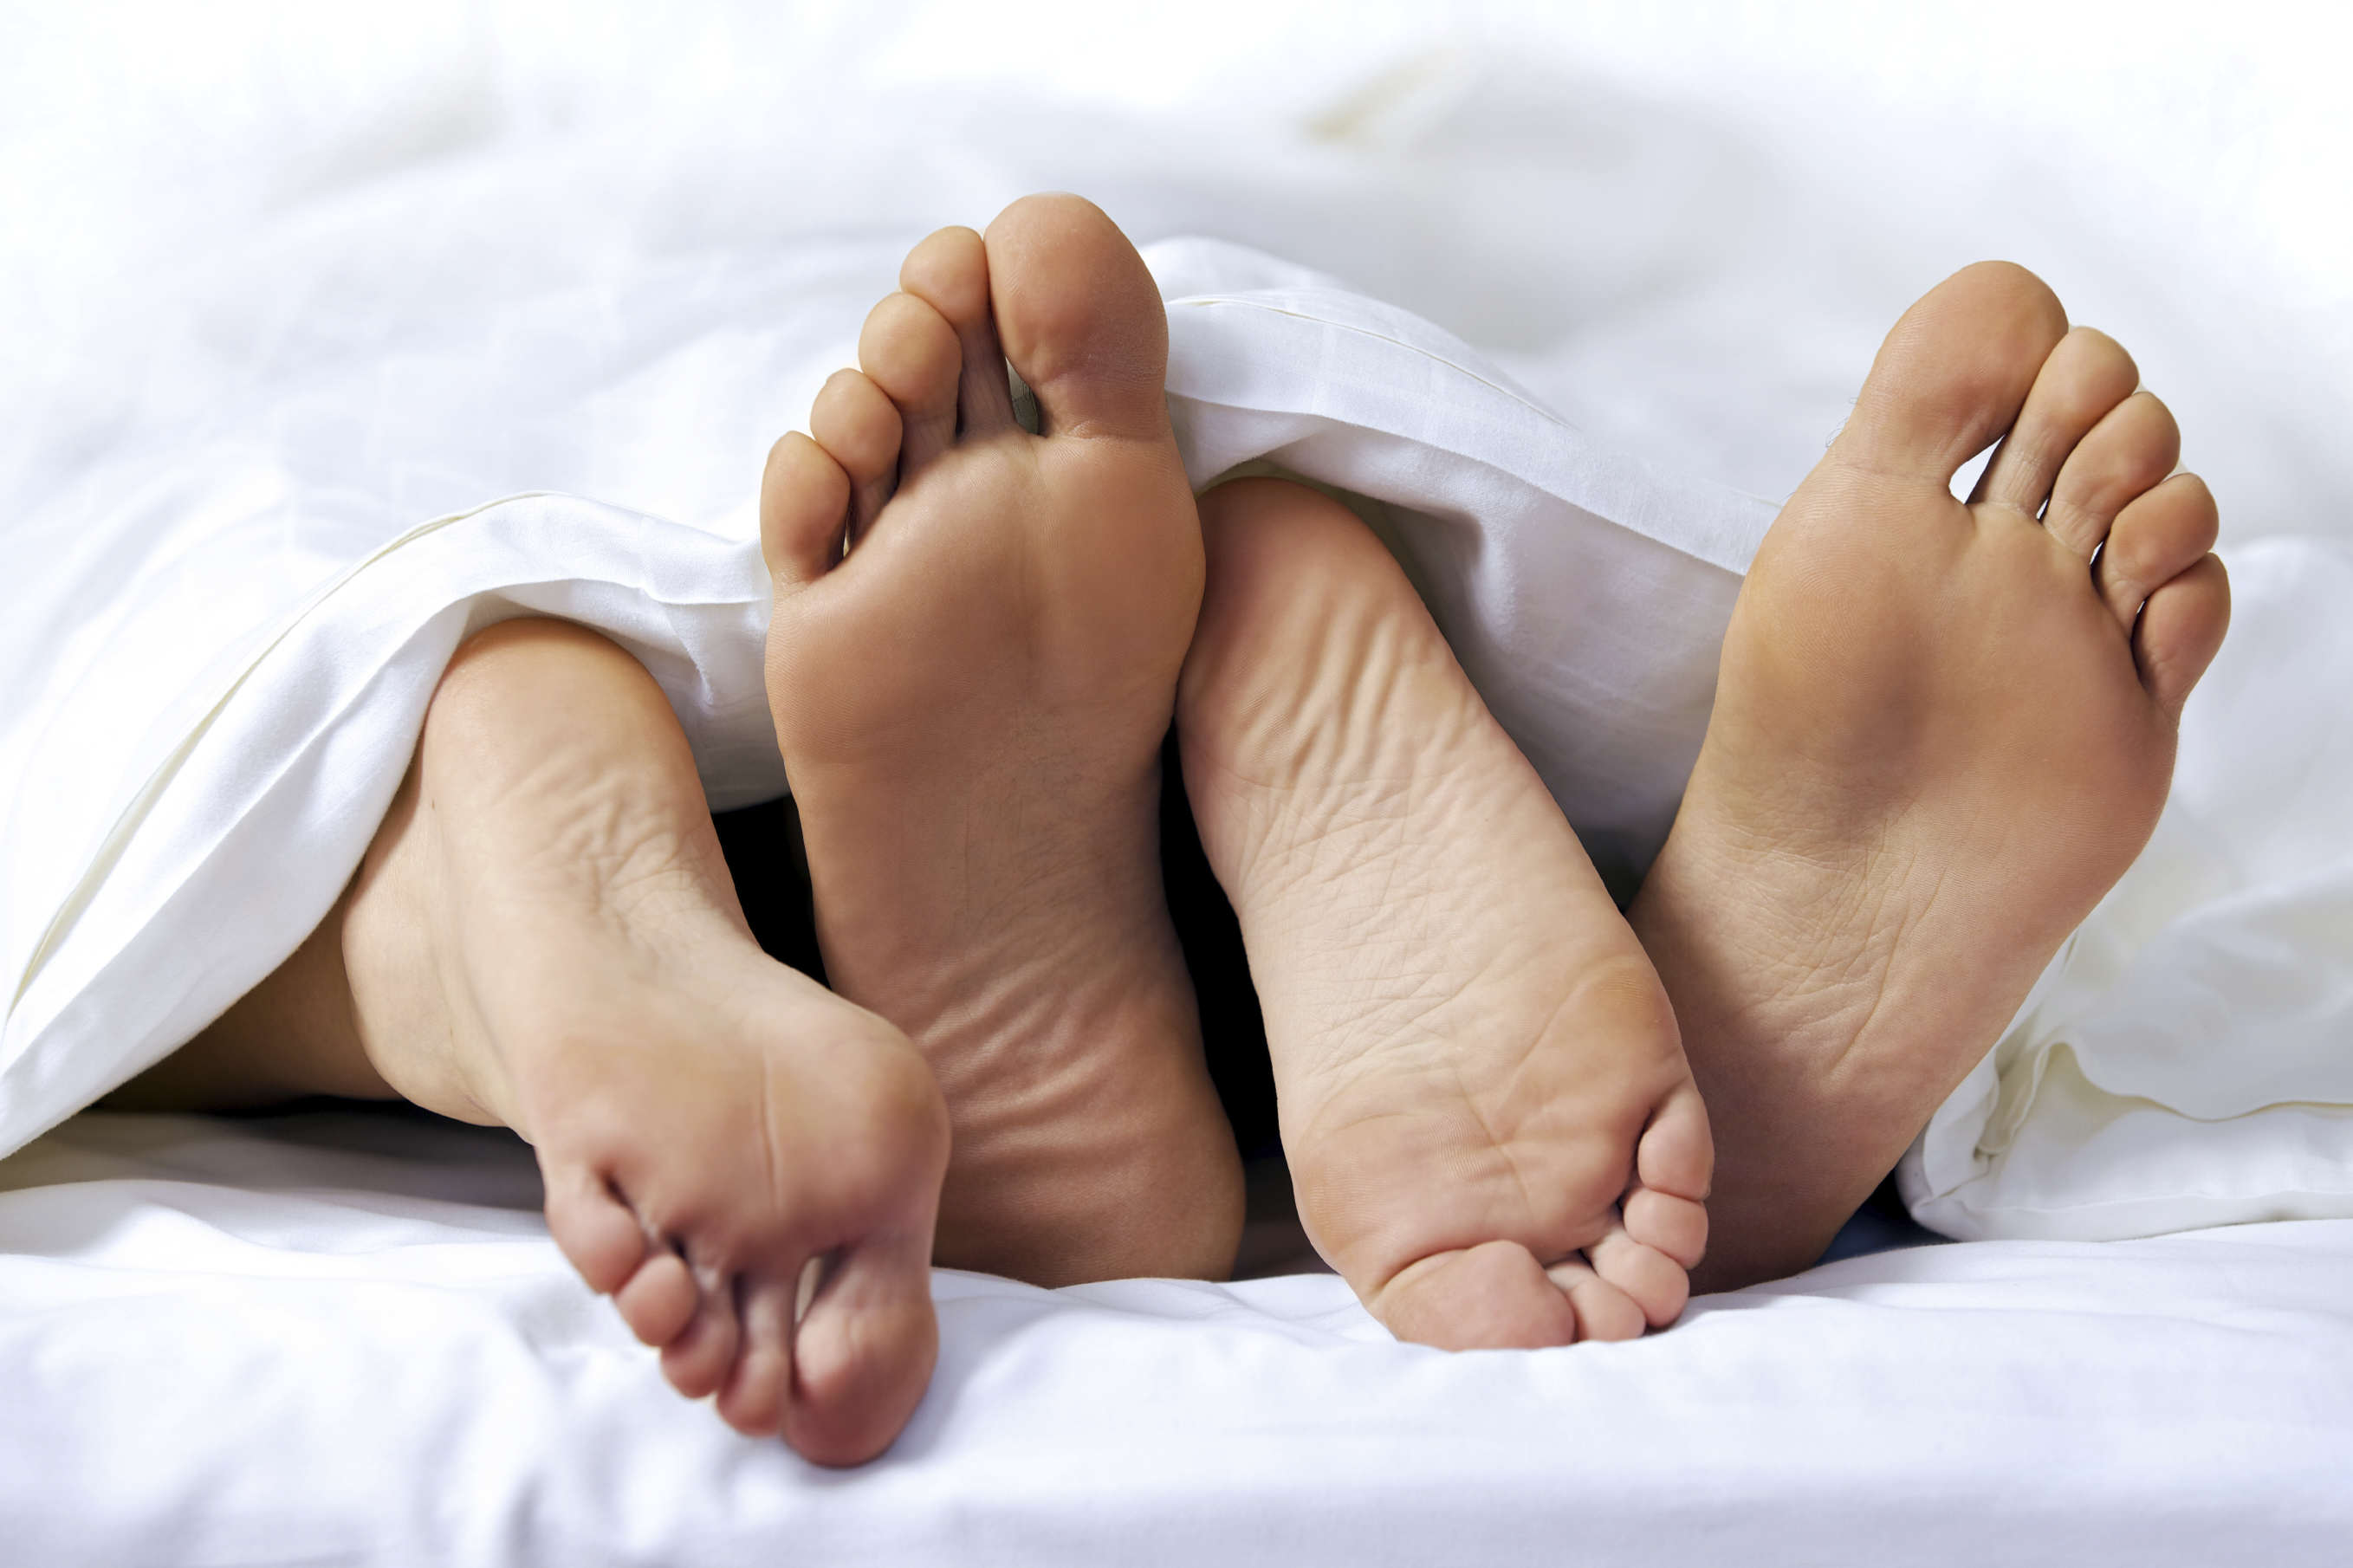 Foot Bed 1 Women Reveal Why They Spit Or Swallow During Sex